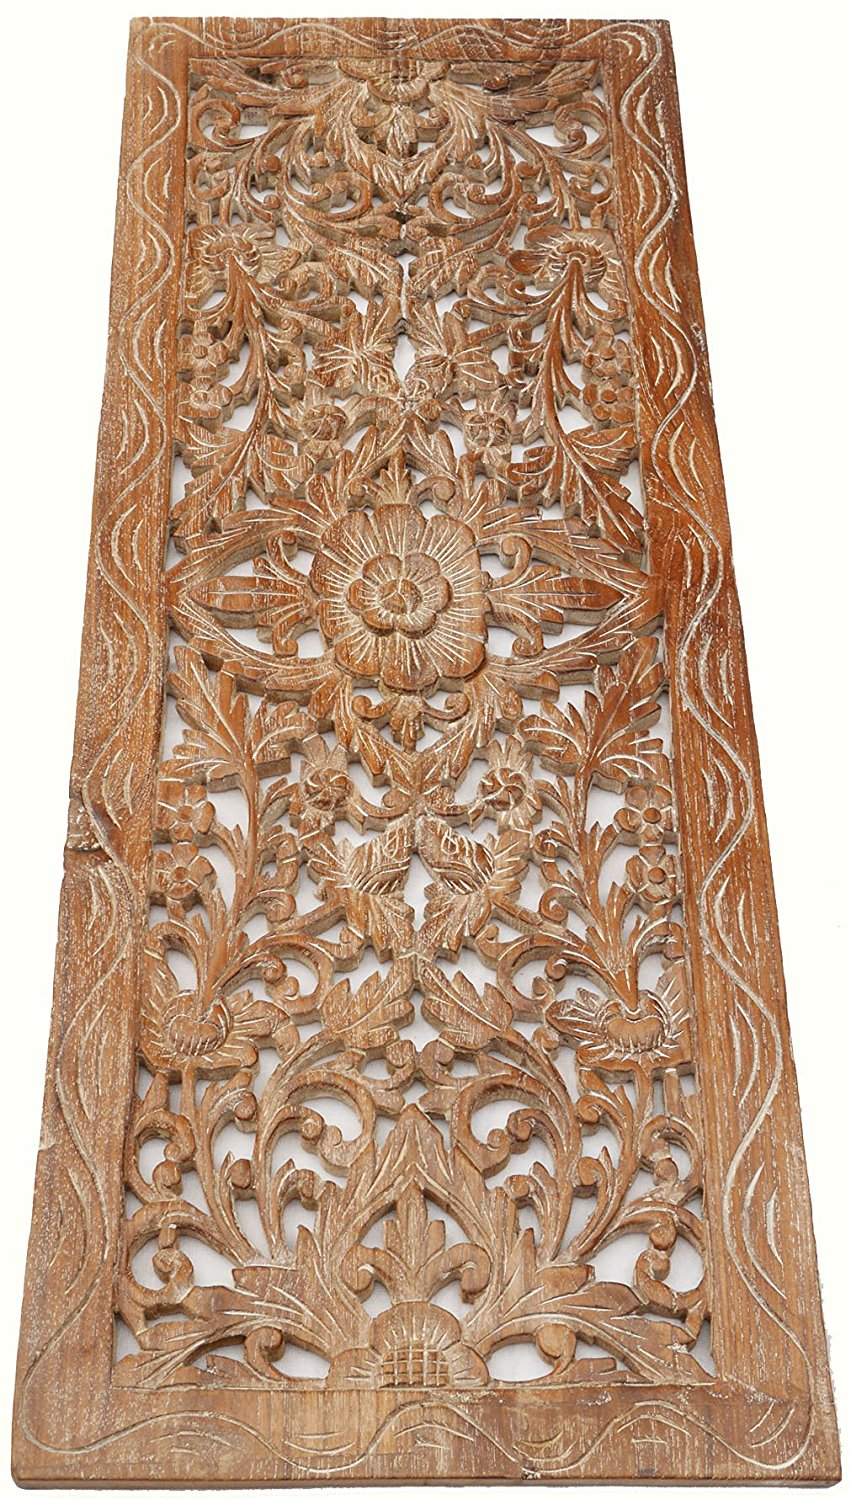 Large Carved Wood Wall Panel Fl Decor Size 35 5 X13